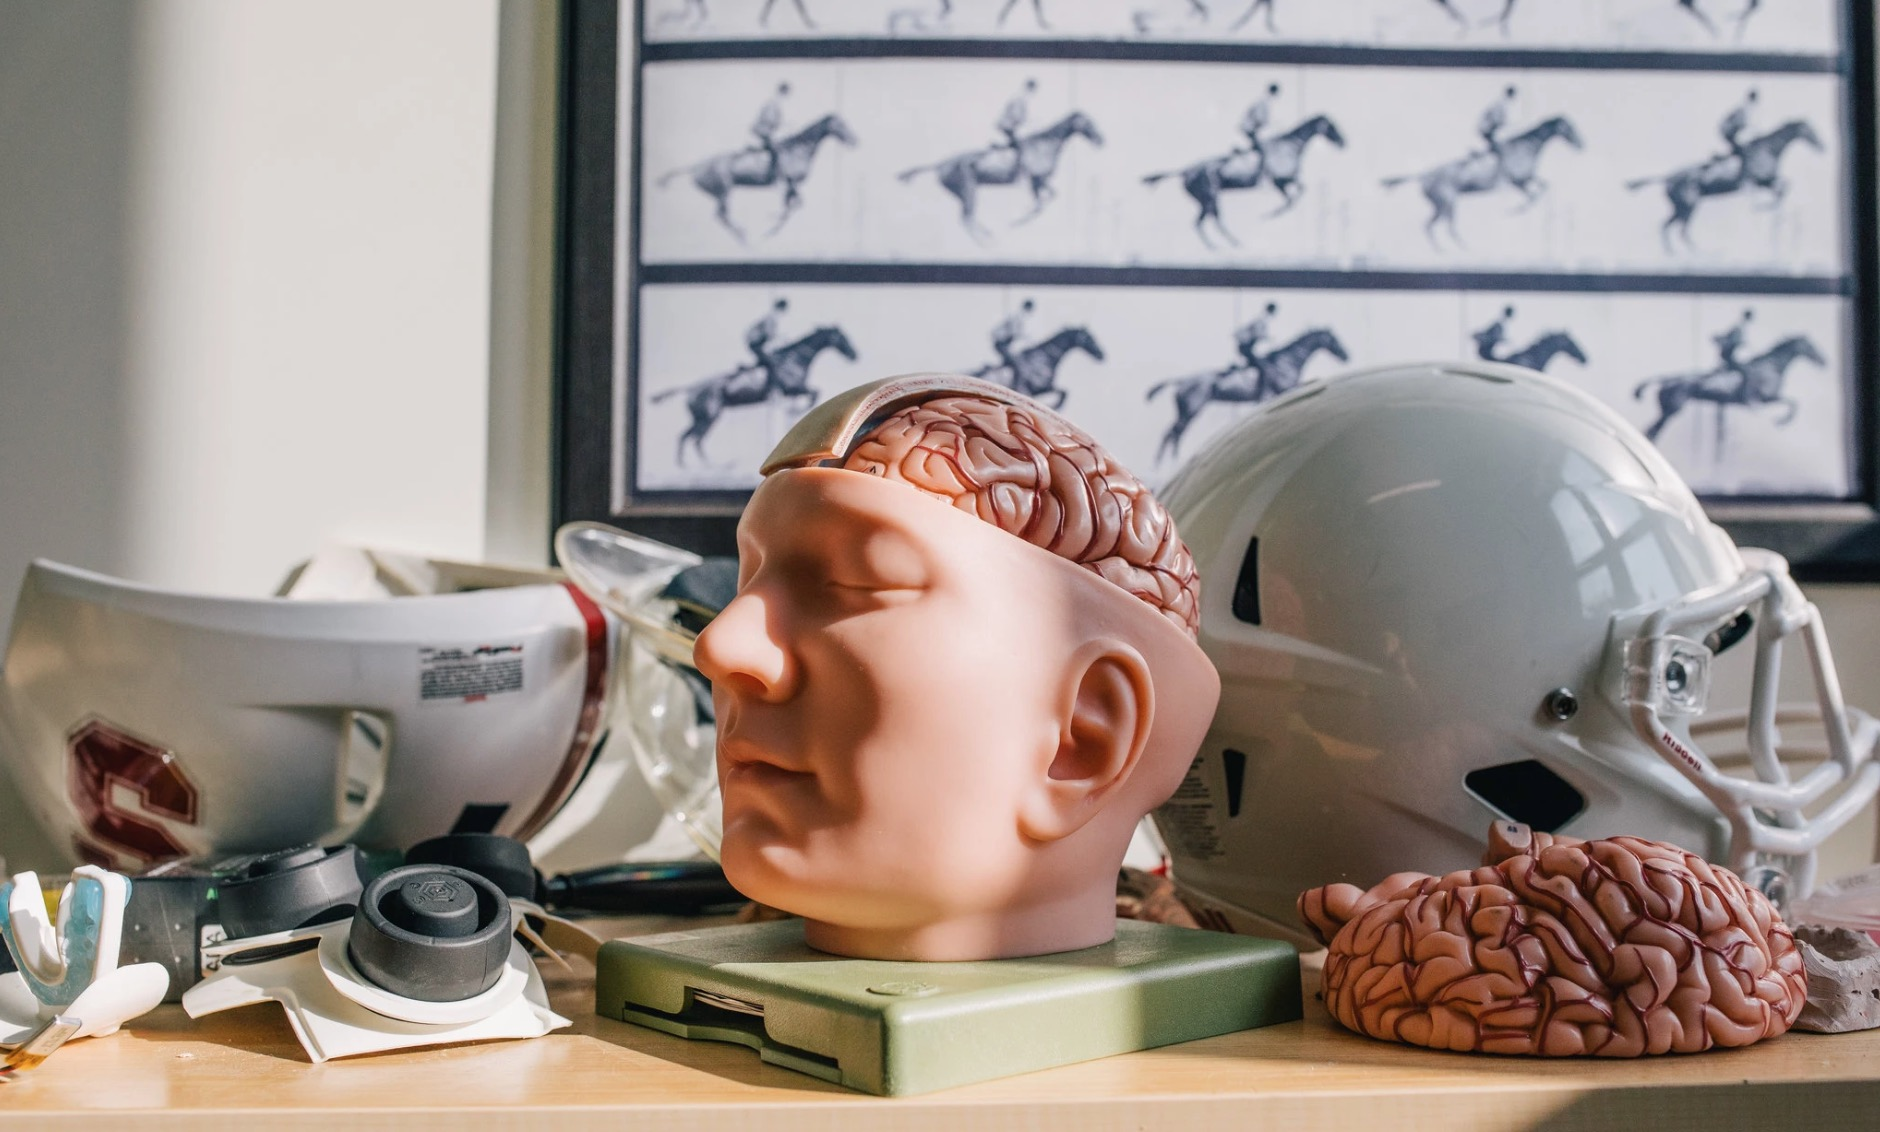 This Helmet Will Save Football. Actually, Probably Not